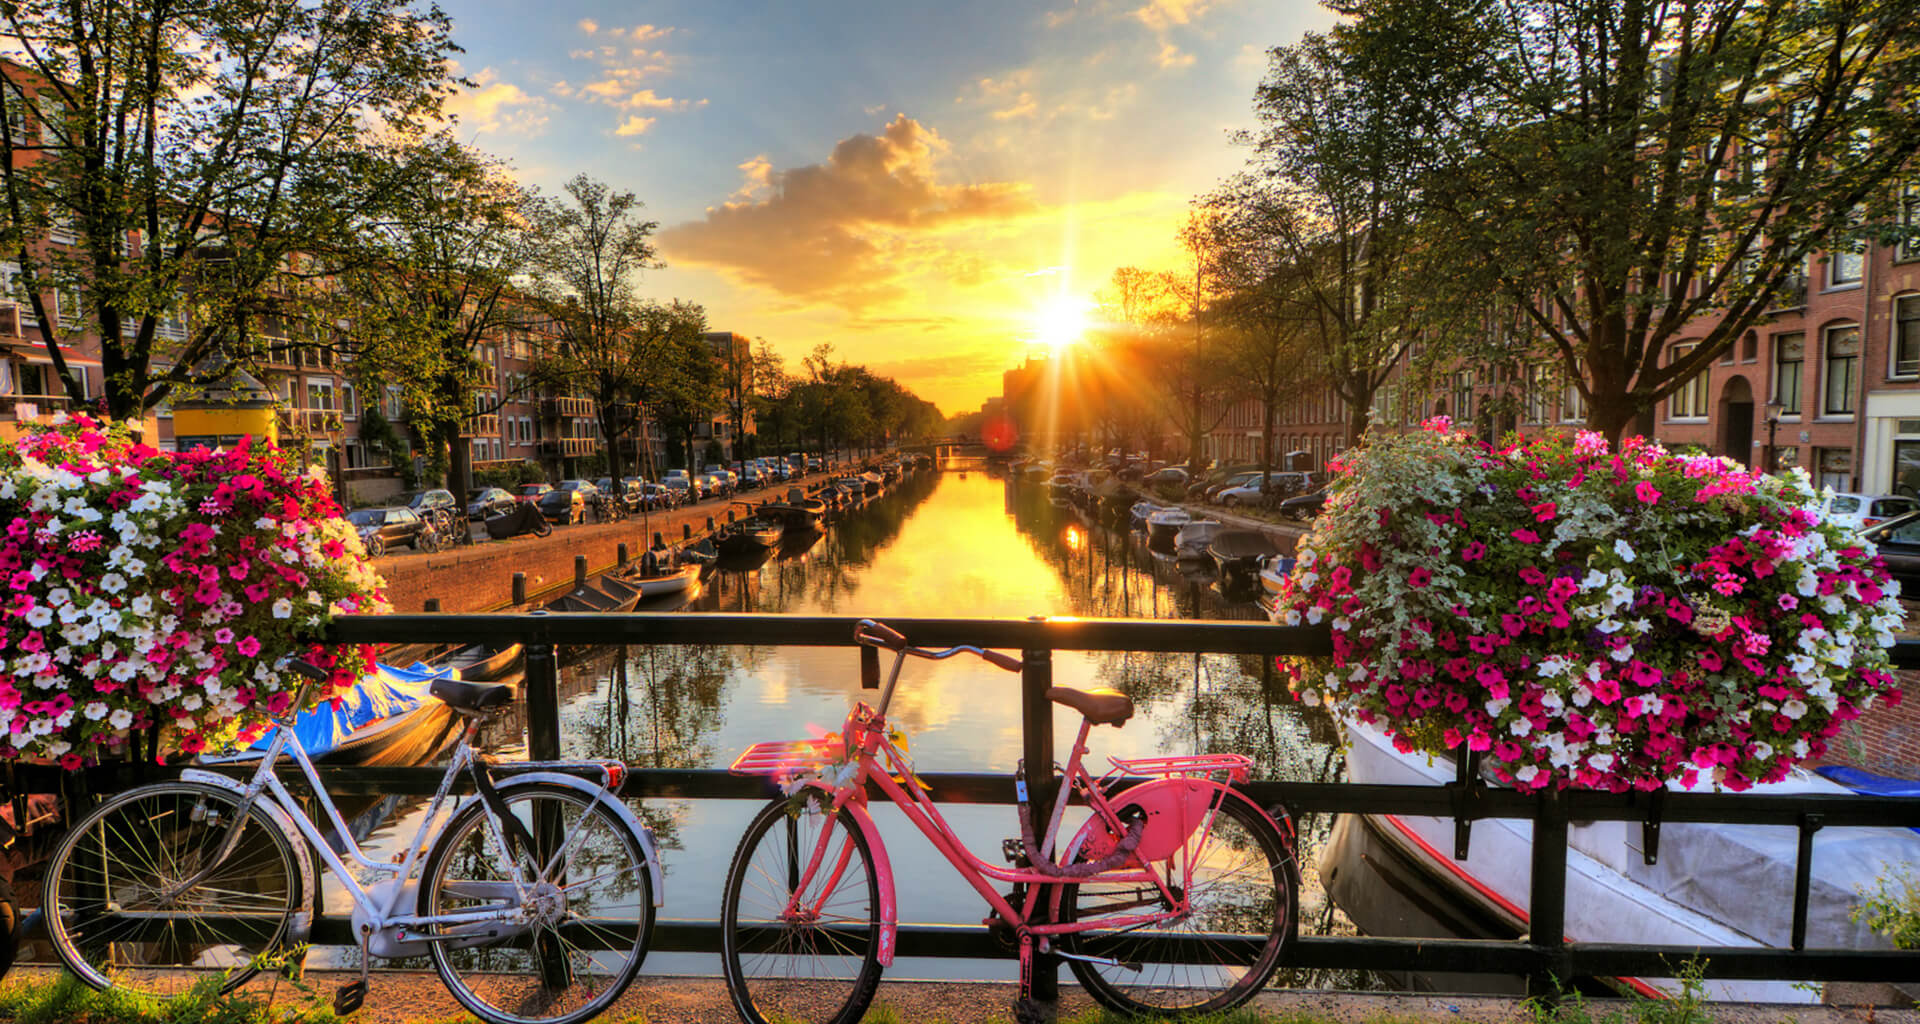 15% off ferries to Amsterdam with DFDS